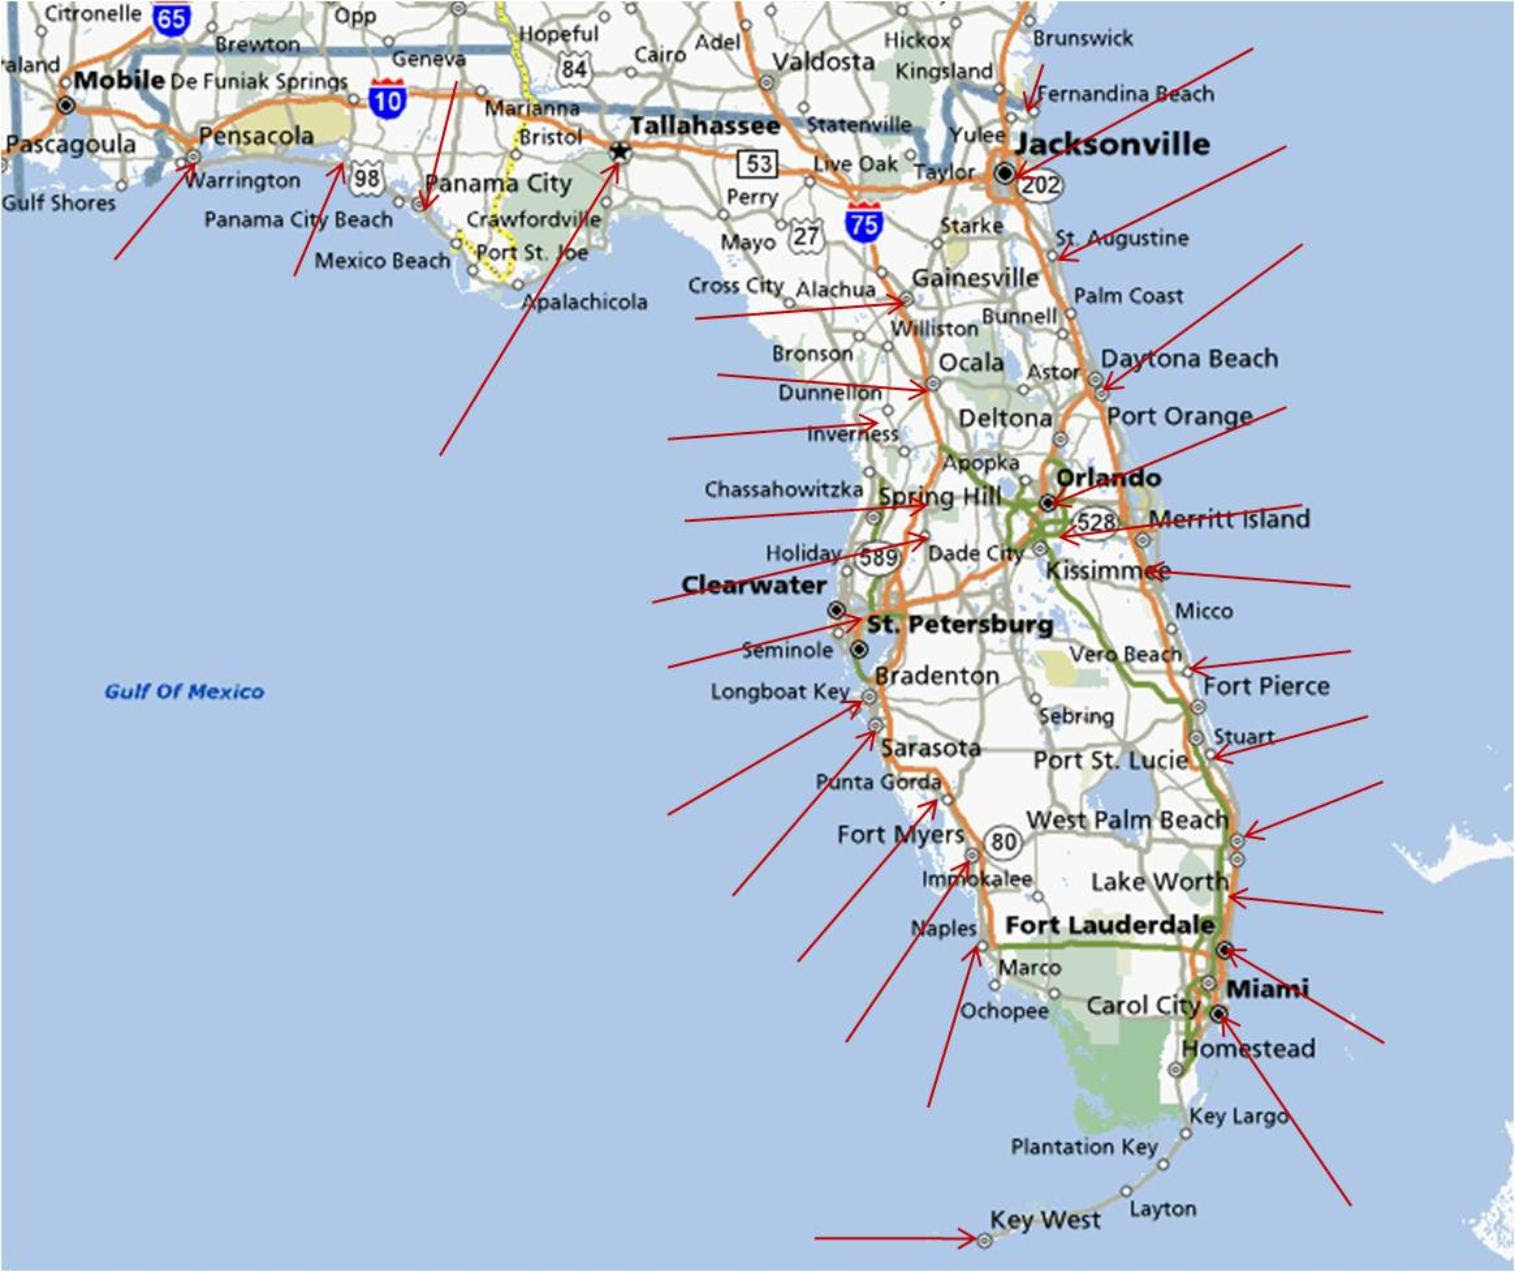 Gulf Coast Map Of Florida Beaches.25 Awesome Map Of Florida West Coast Beaches